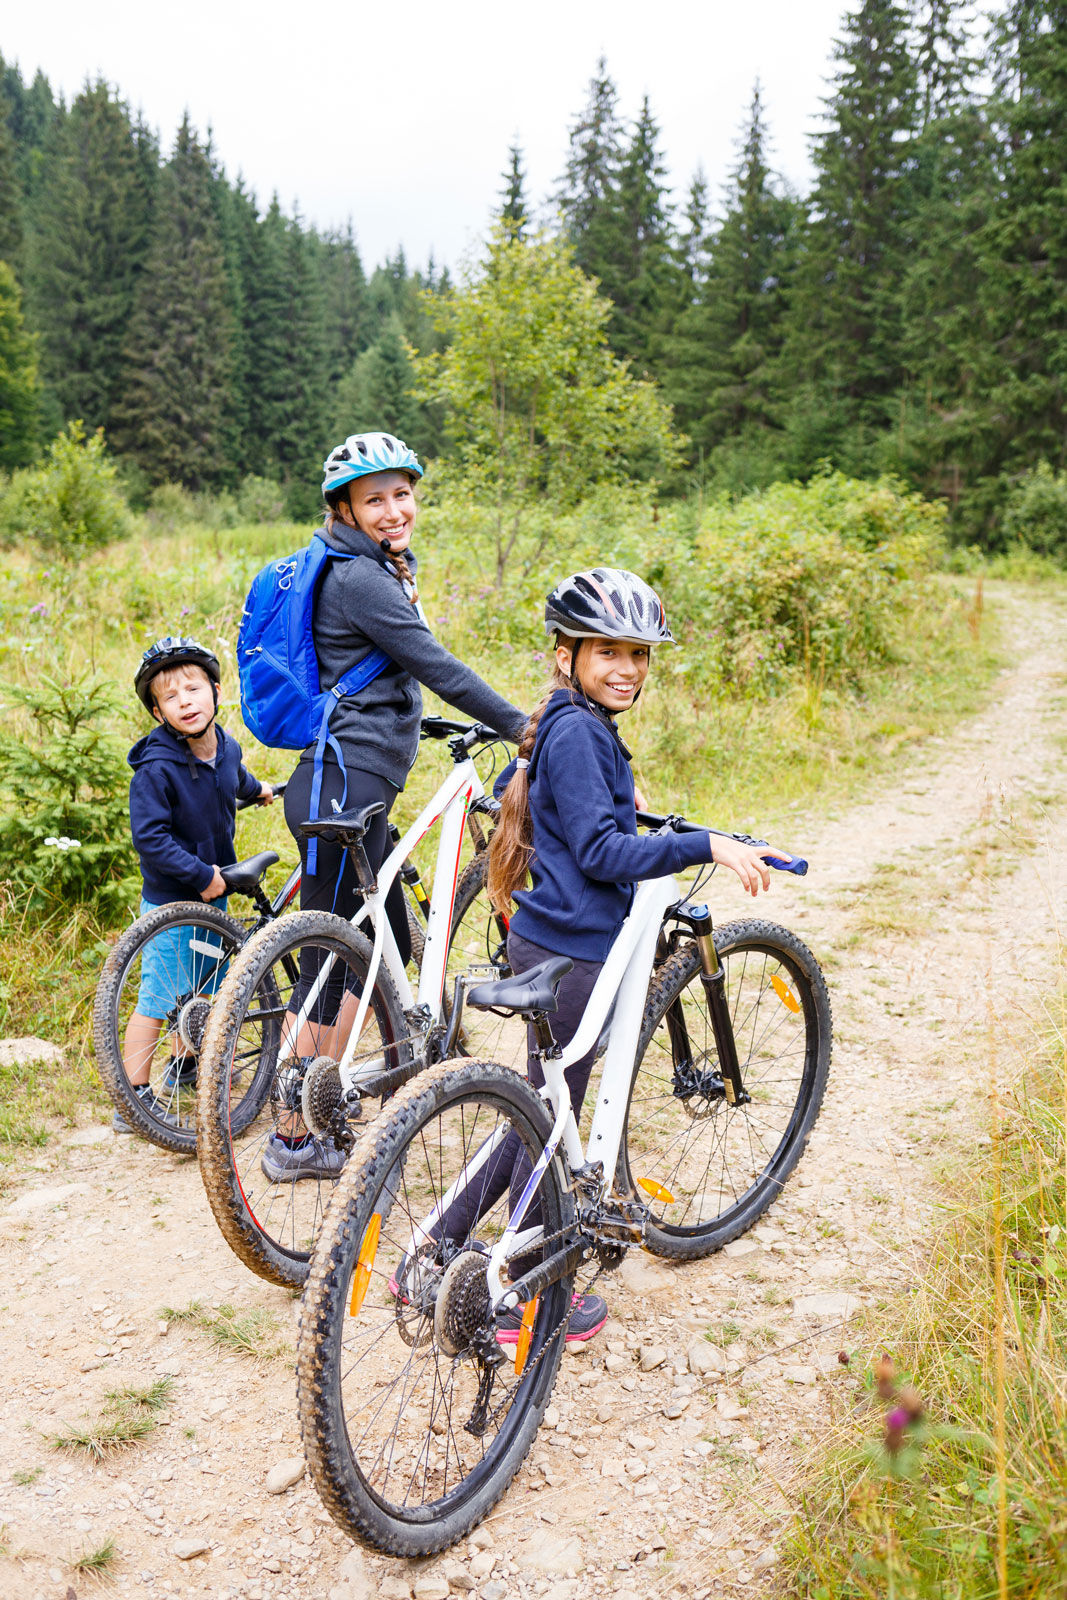 Explore the BC wild on wheels with over 50 km of biking trails.